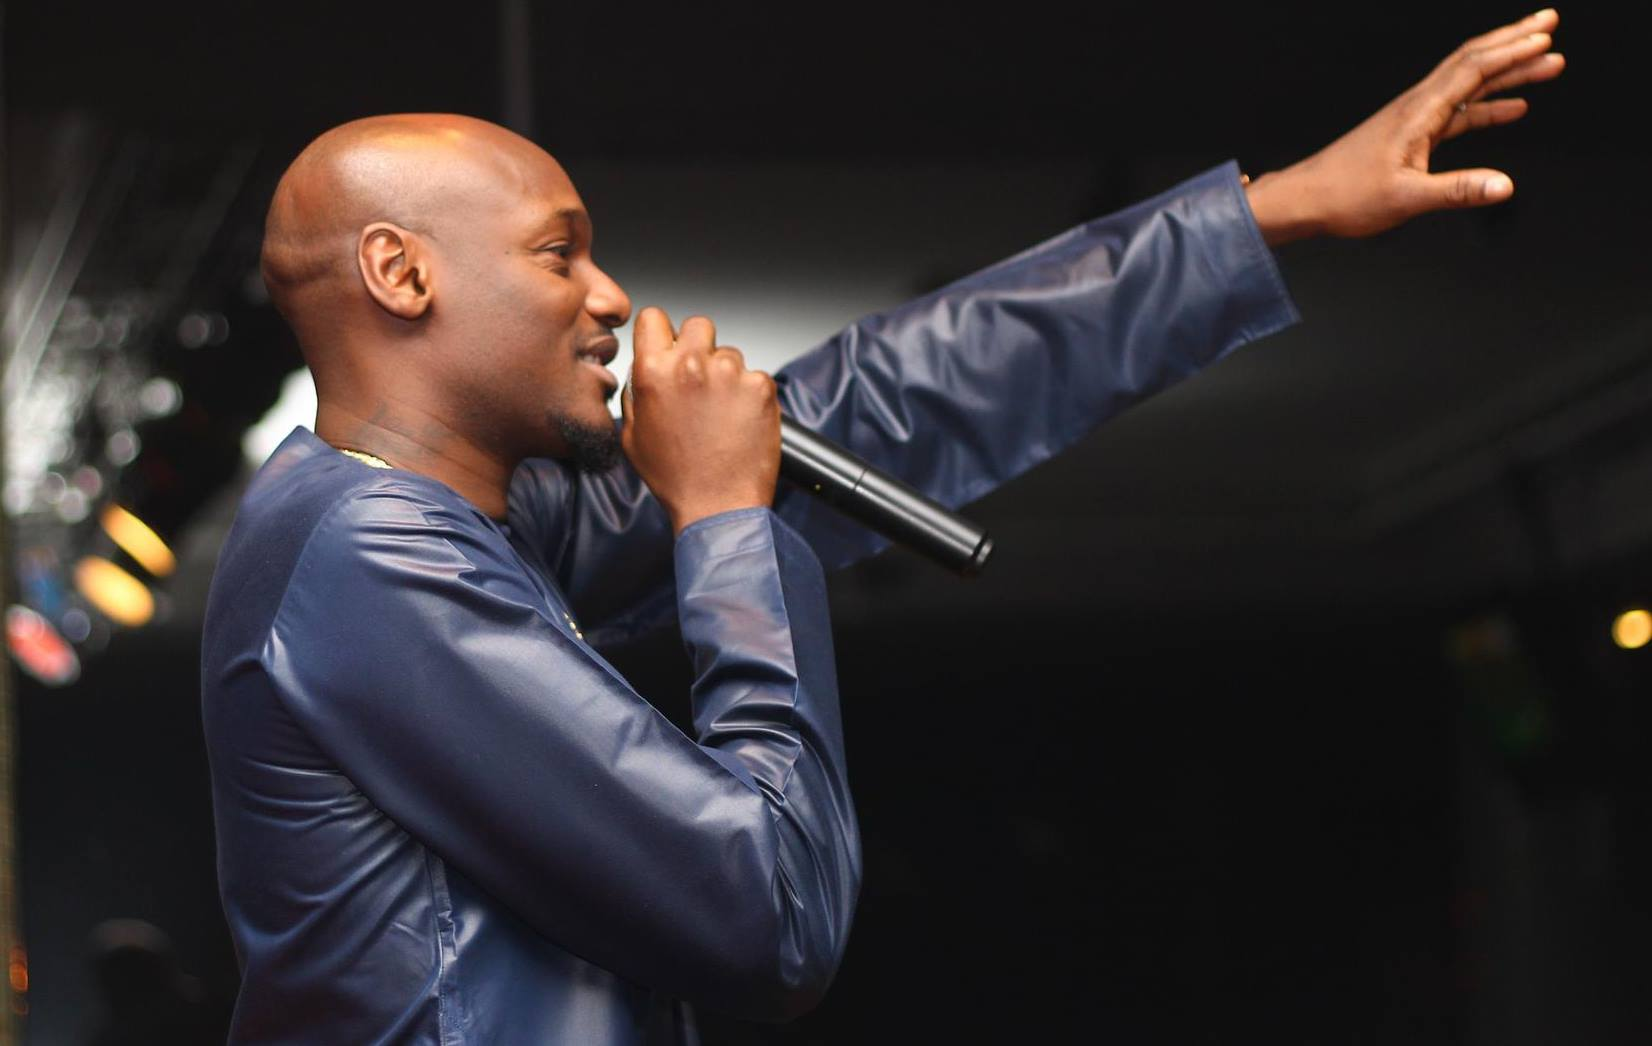 Music Legend 2face turns actor